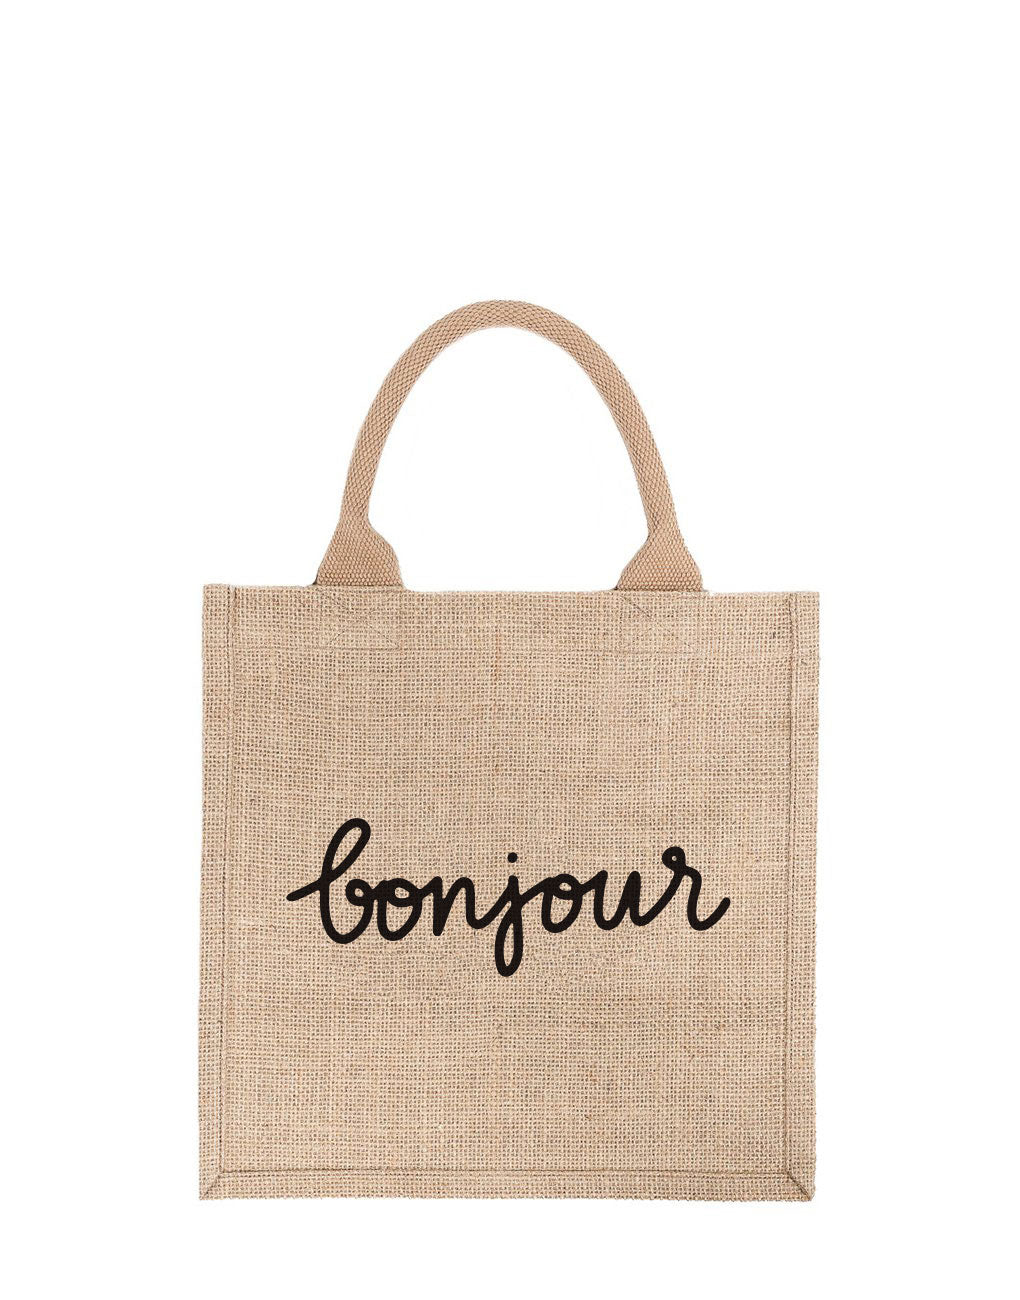 Large Bonjour Reusable Gift Tote In Black Font | The Little Market